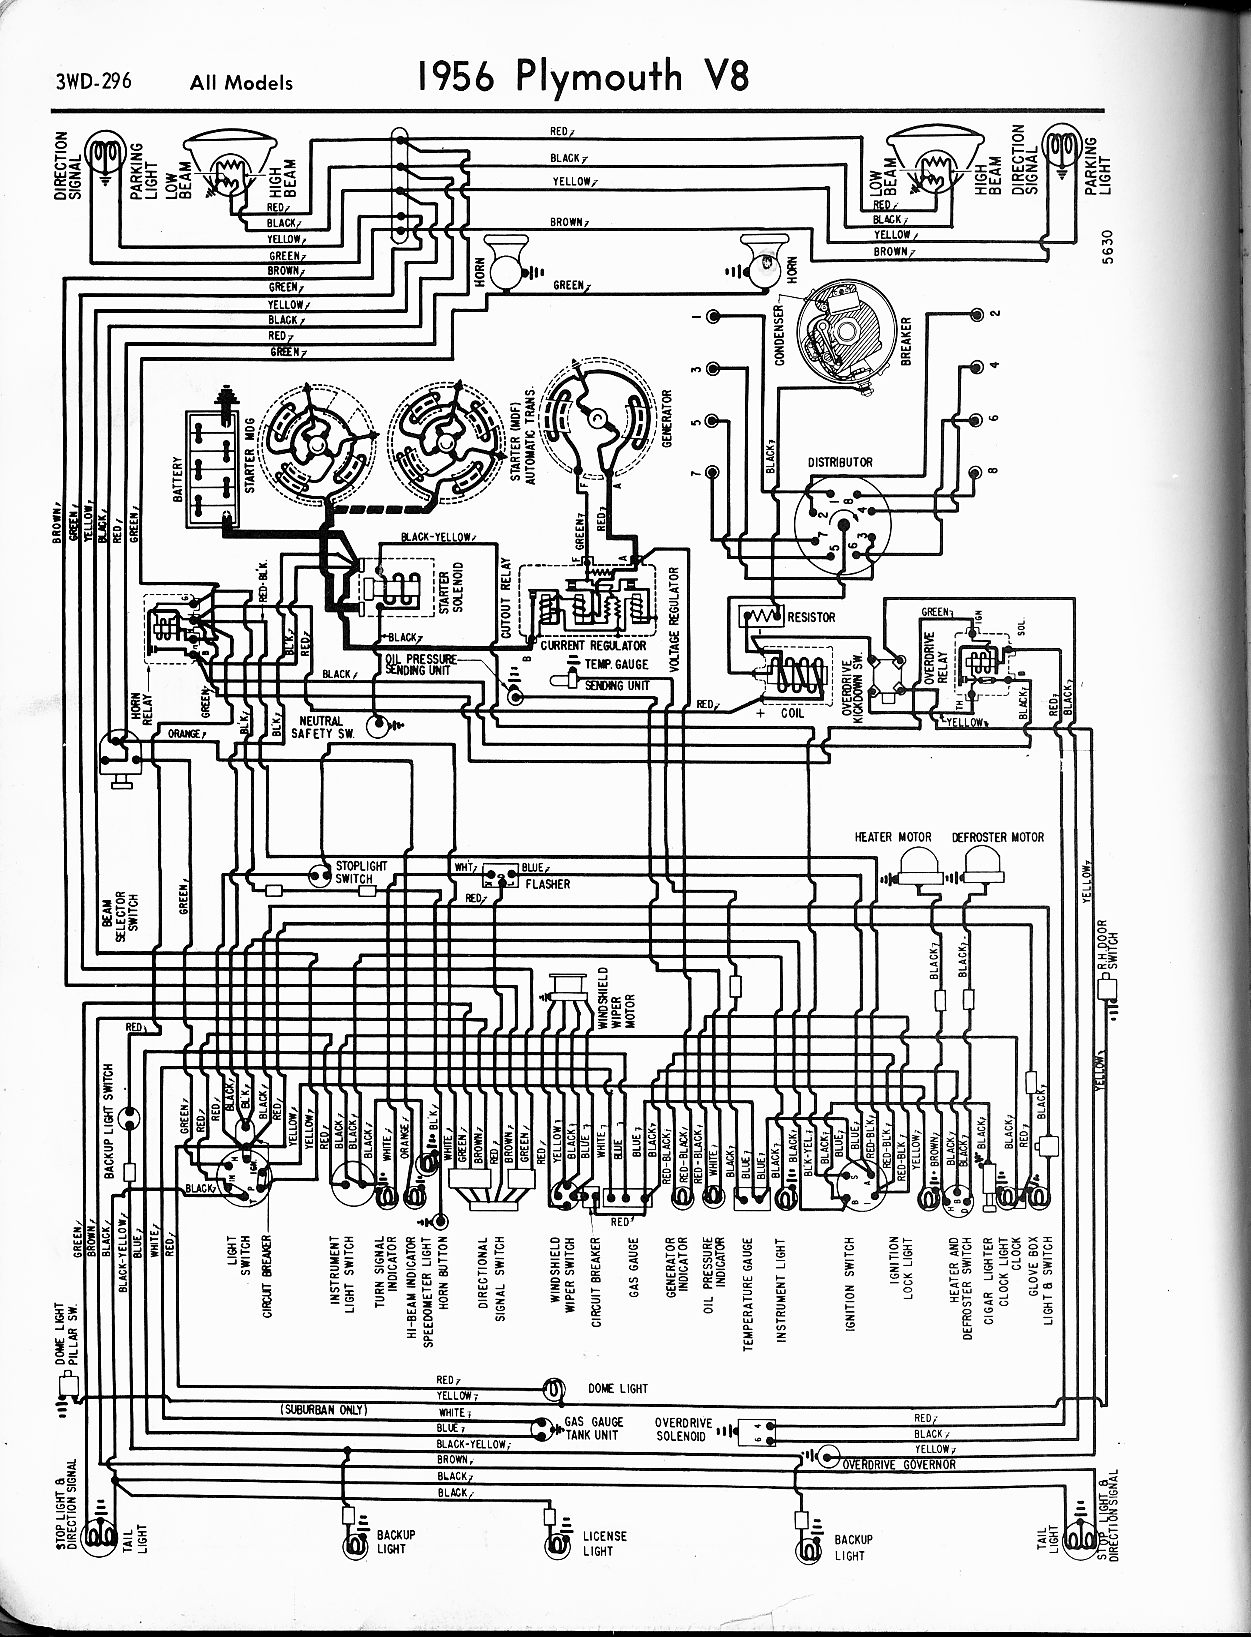 Plymouth Ac Wiring Diagram Change Your Idea With Electrical 1954 Dodge 1956 1965 The Old Car Manual Project Rh Oldcarmanualproject Com Hobart Hcm 450 1939 Positive Ground